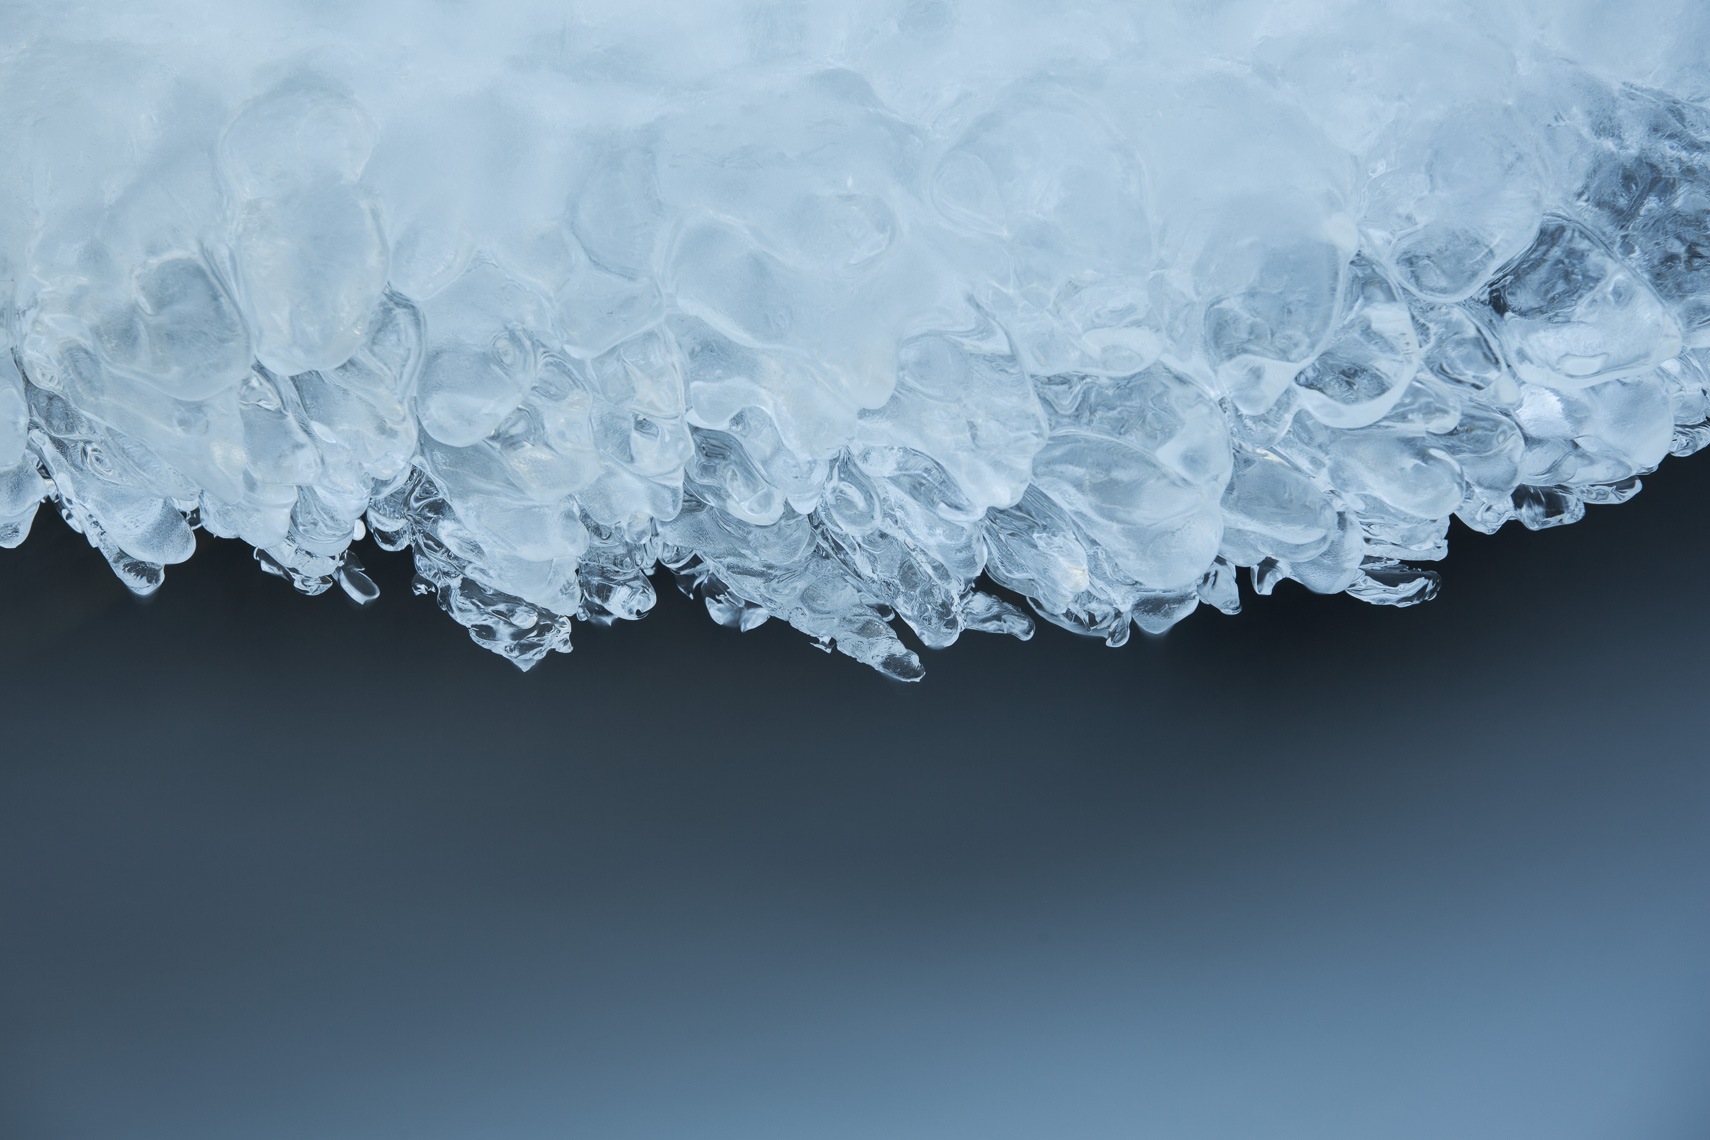 Close up of ice and flowing water in frozen river by Paul Green Photographer